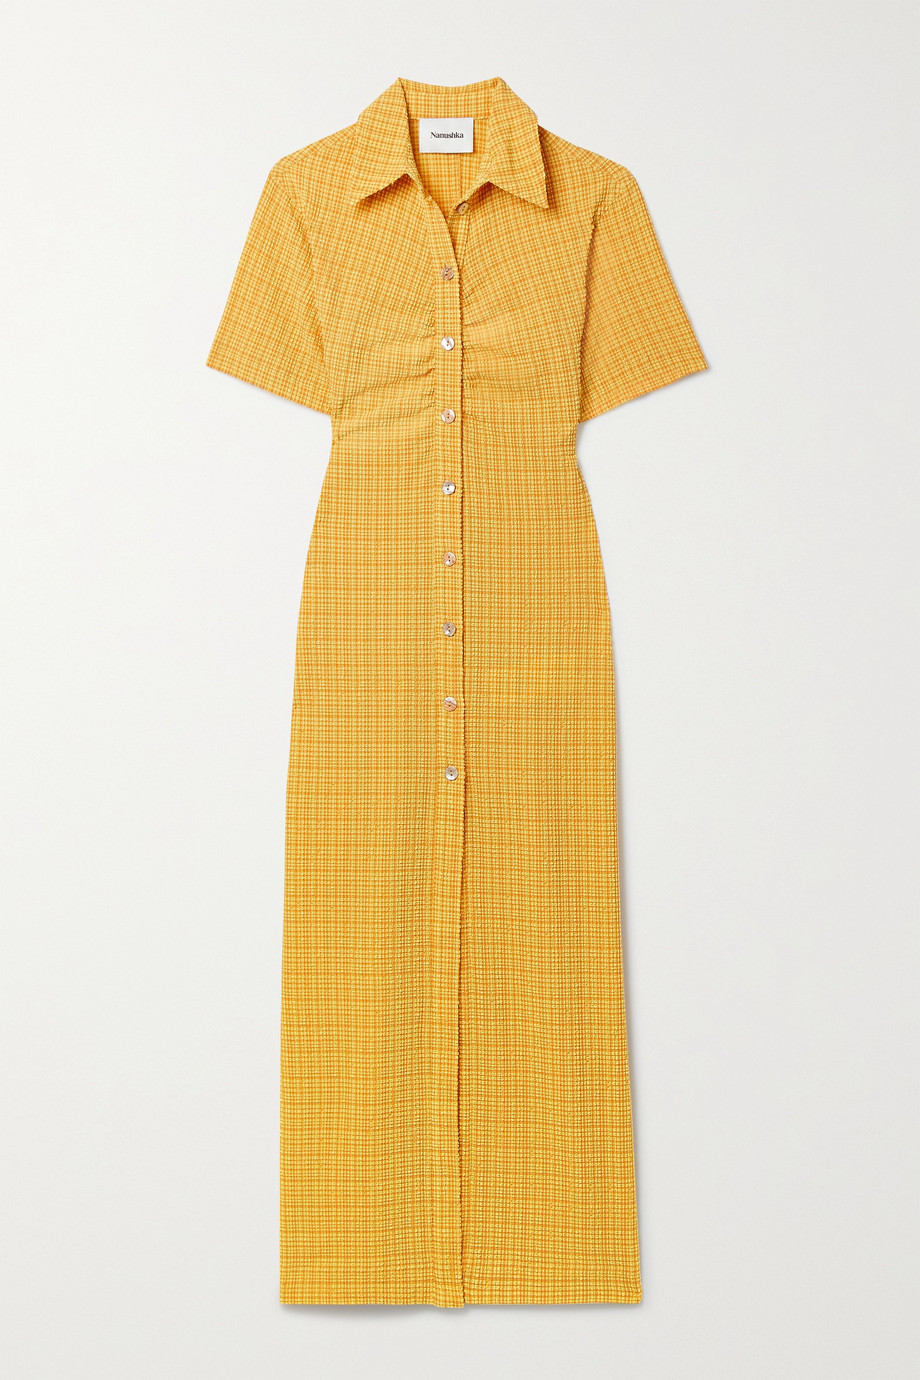 NANUSHKA + NET SUSTAIN Sabri ruched checked seersucker shirt dress